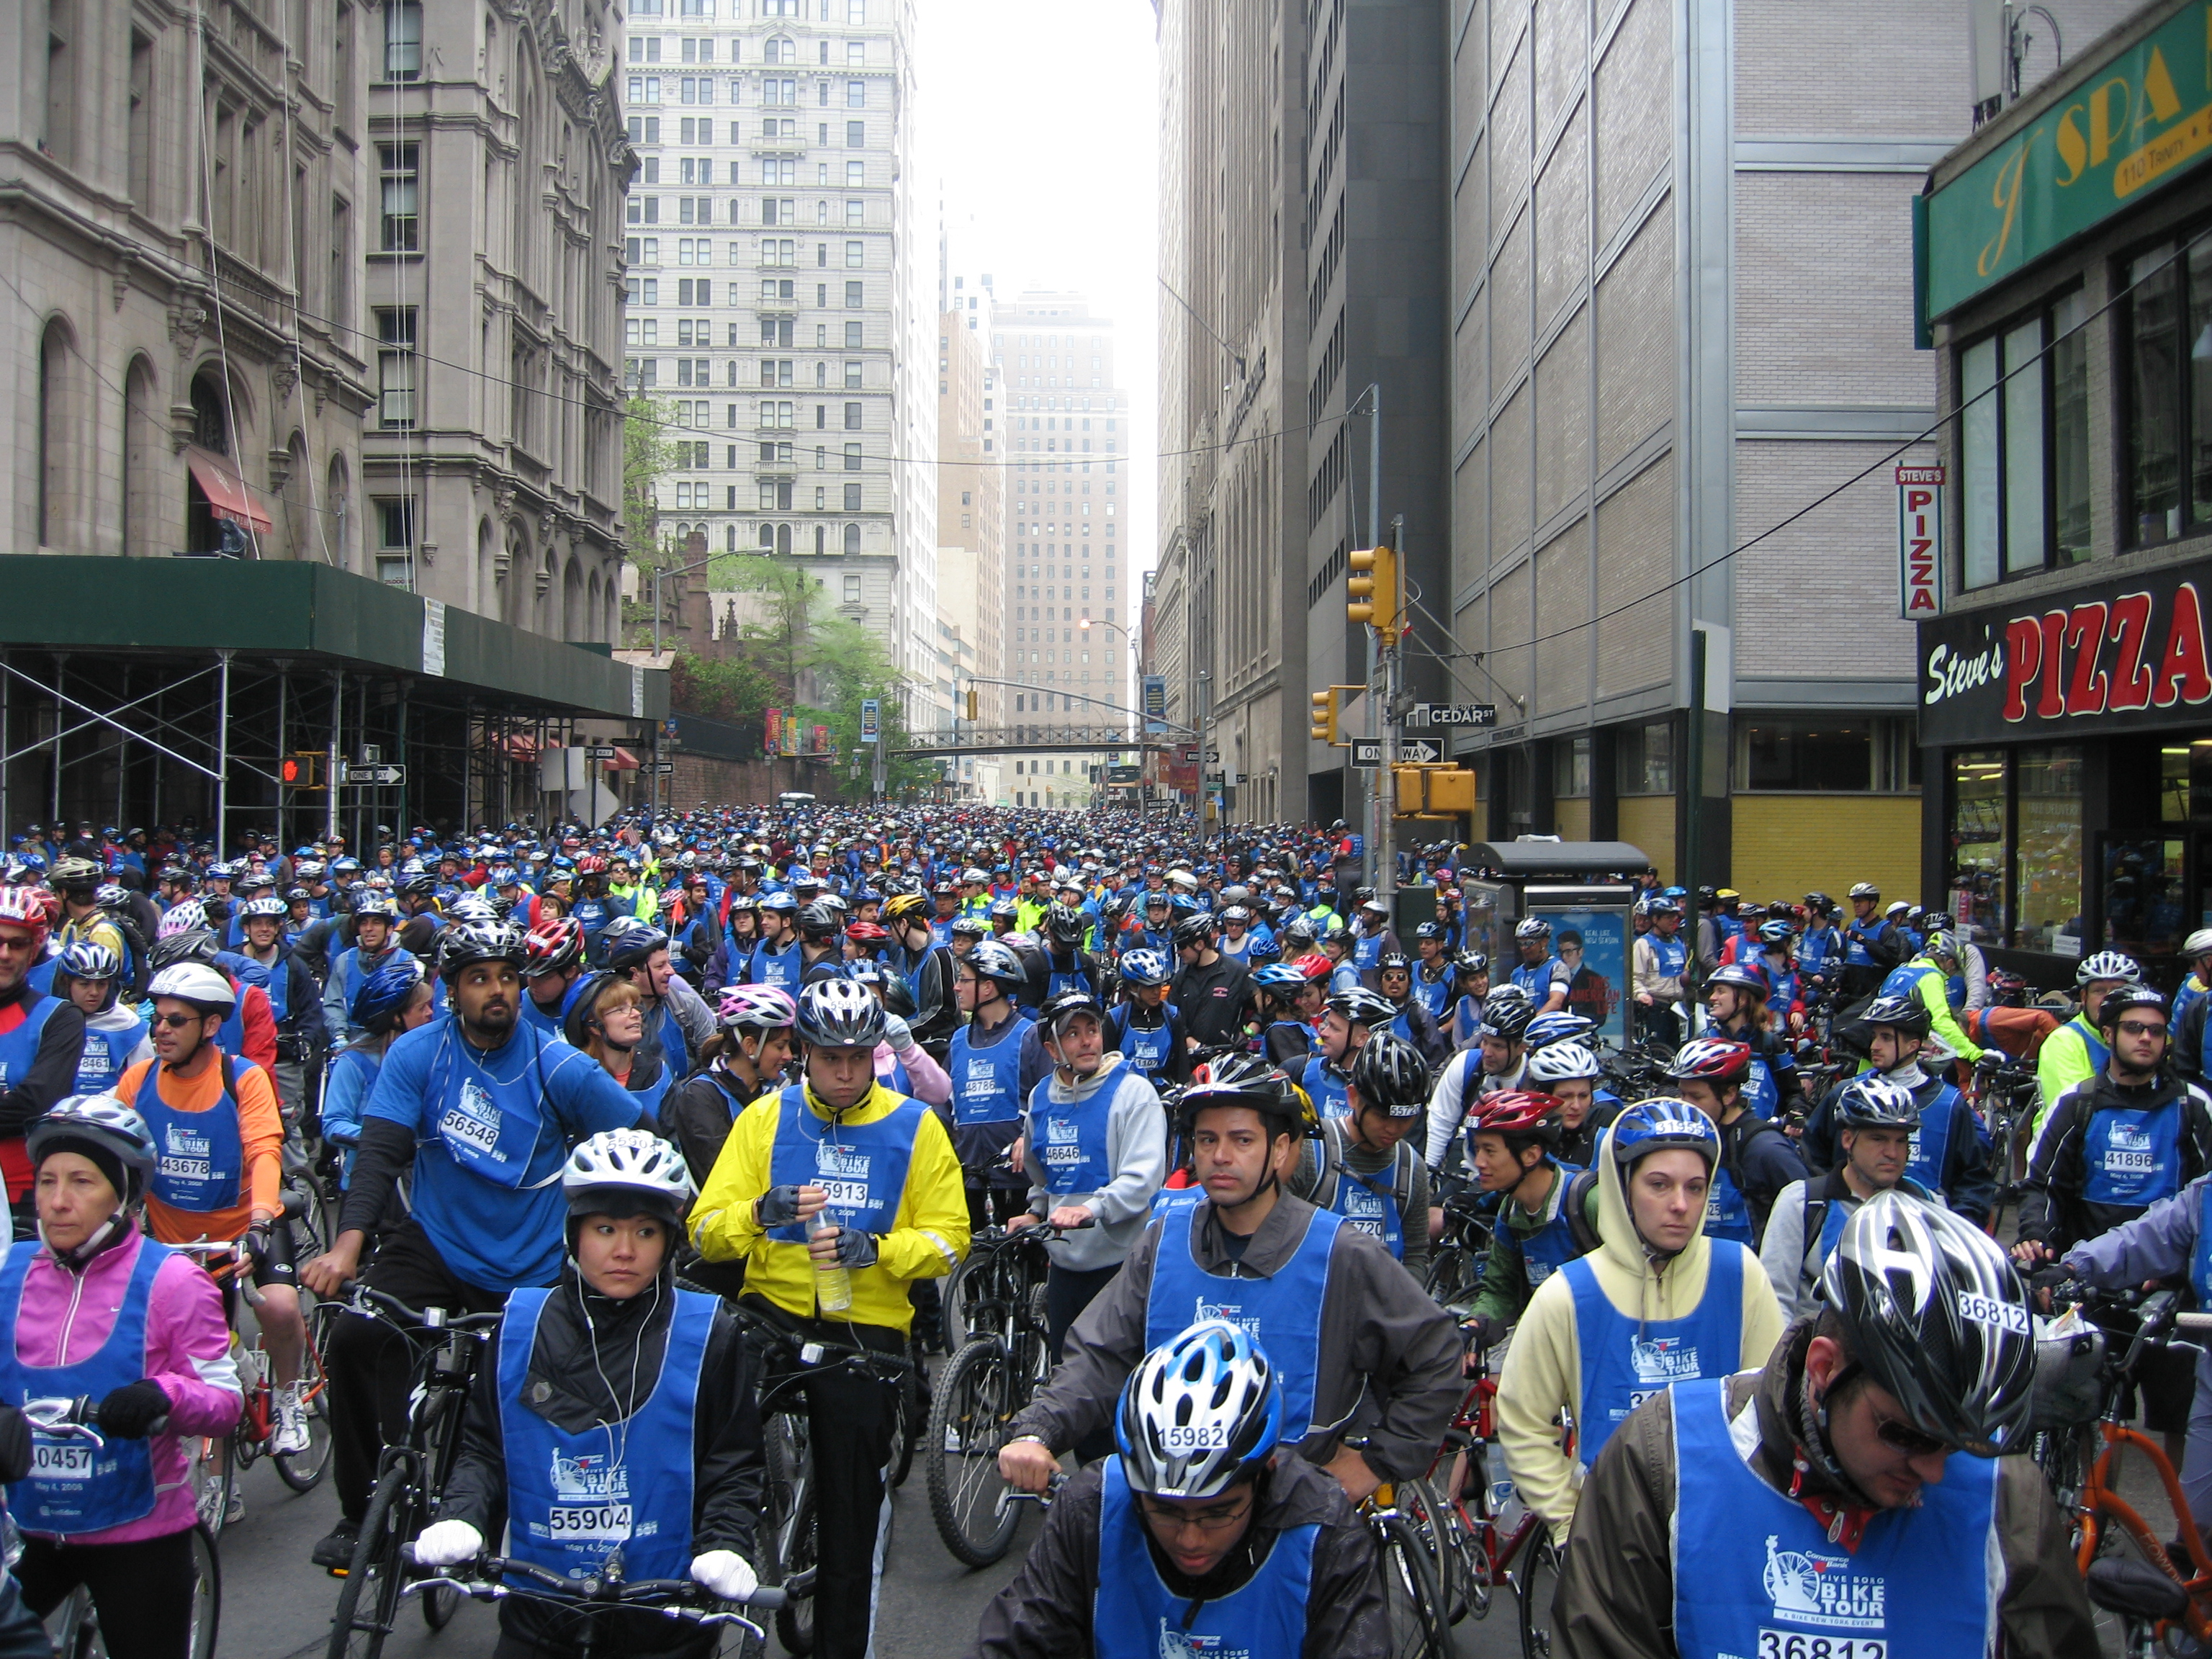 Bike Nyc 5 Boro Riders at the starting point